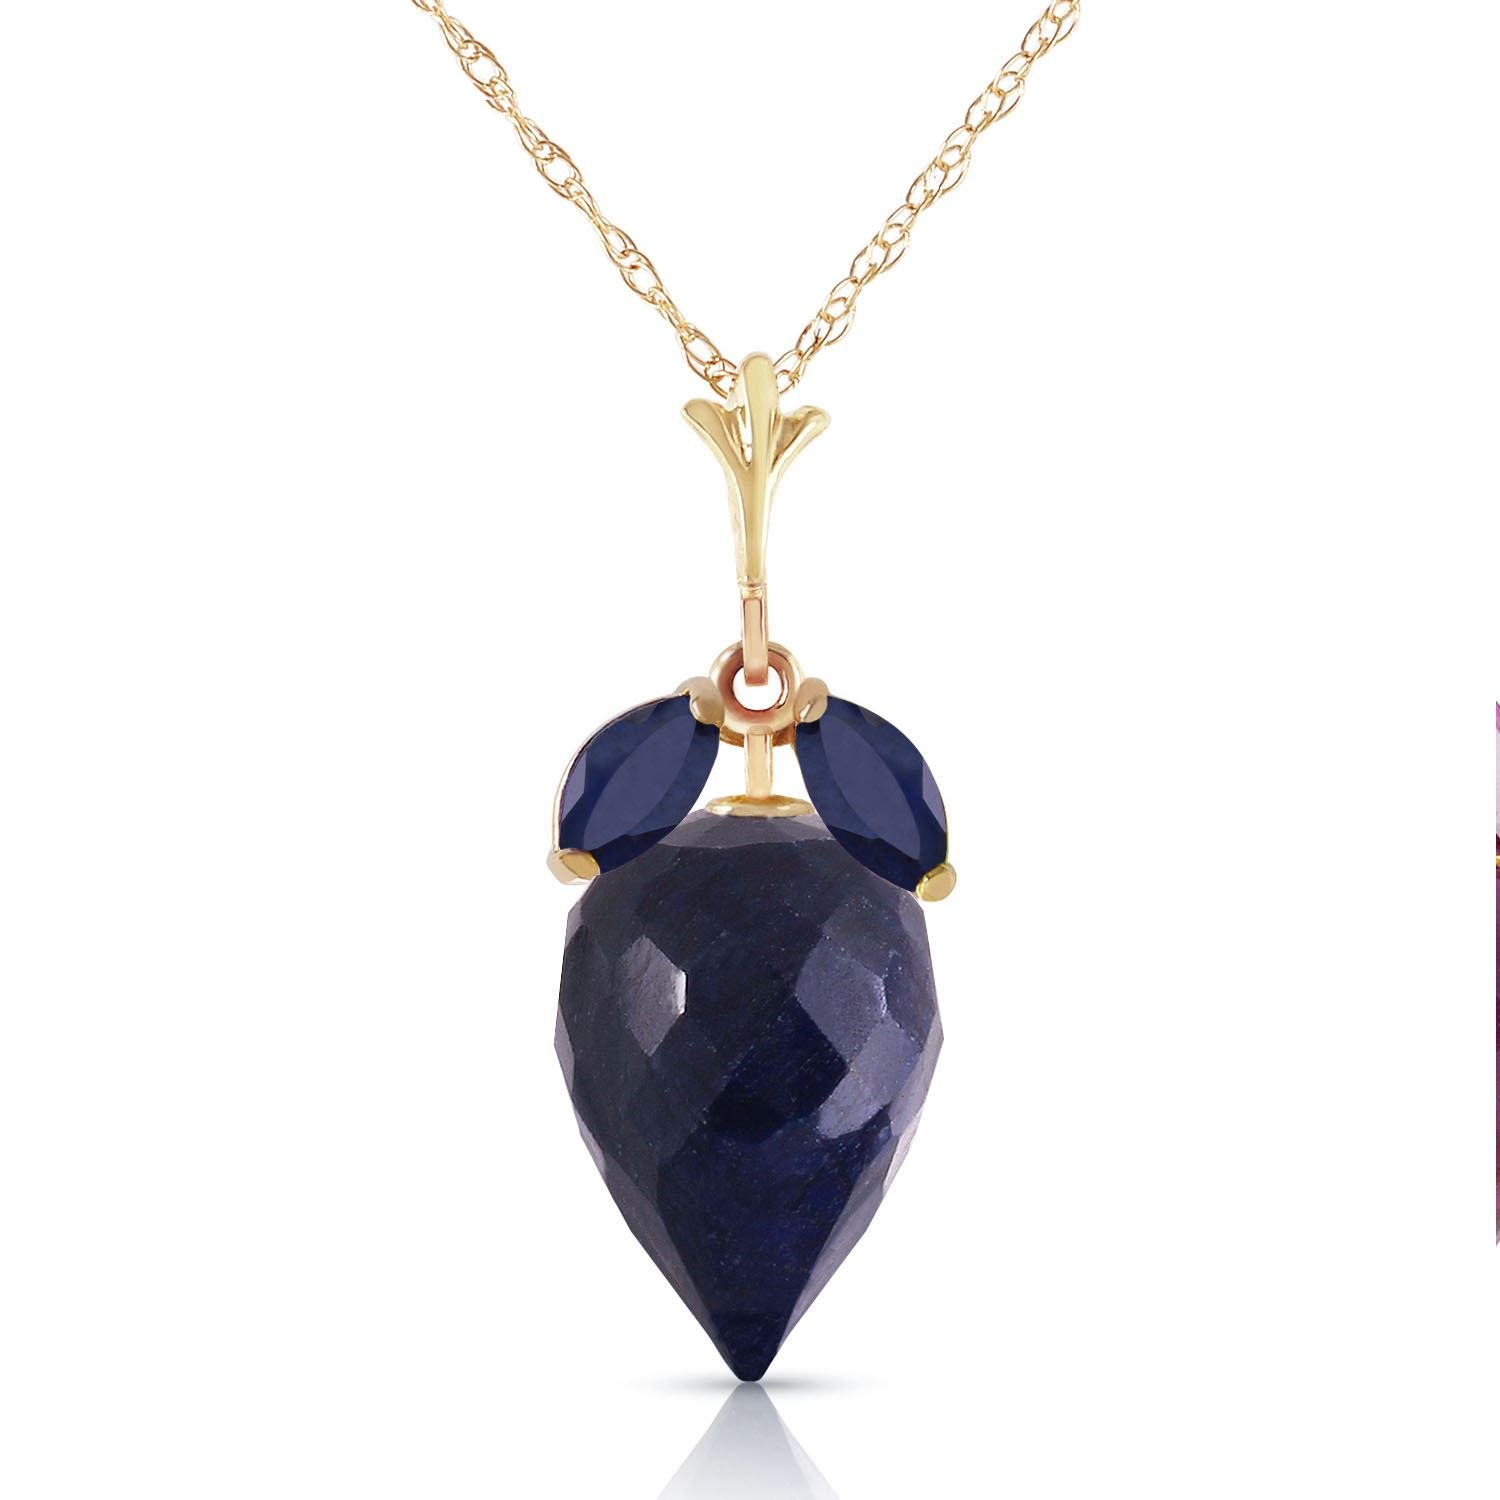 ALARRI 14K Solid Rose Gold Necklace w// Rose Topaz /& Sapphire with 20 Inch Chain Length